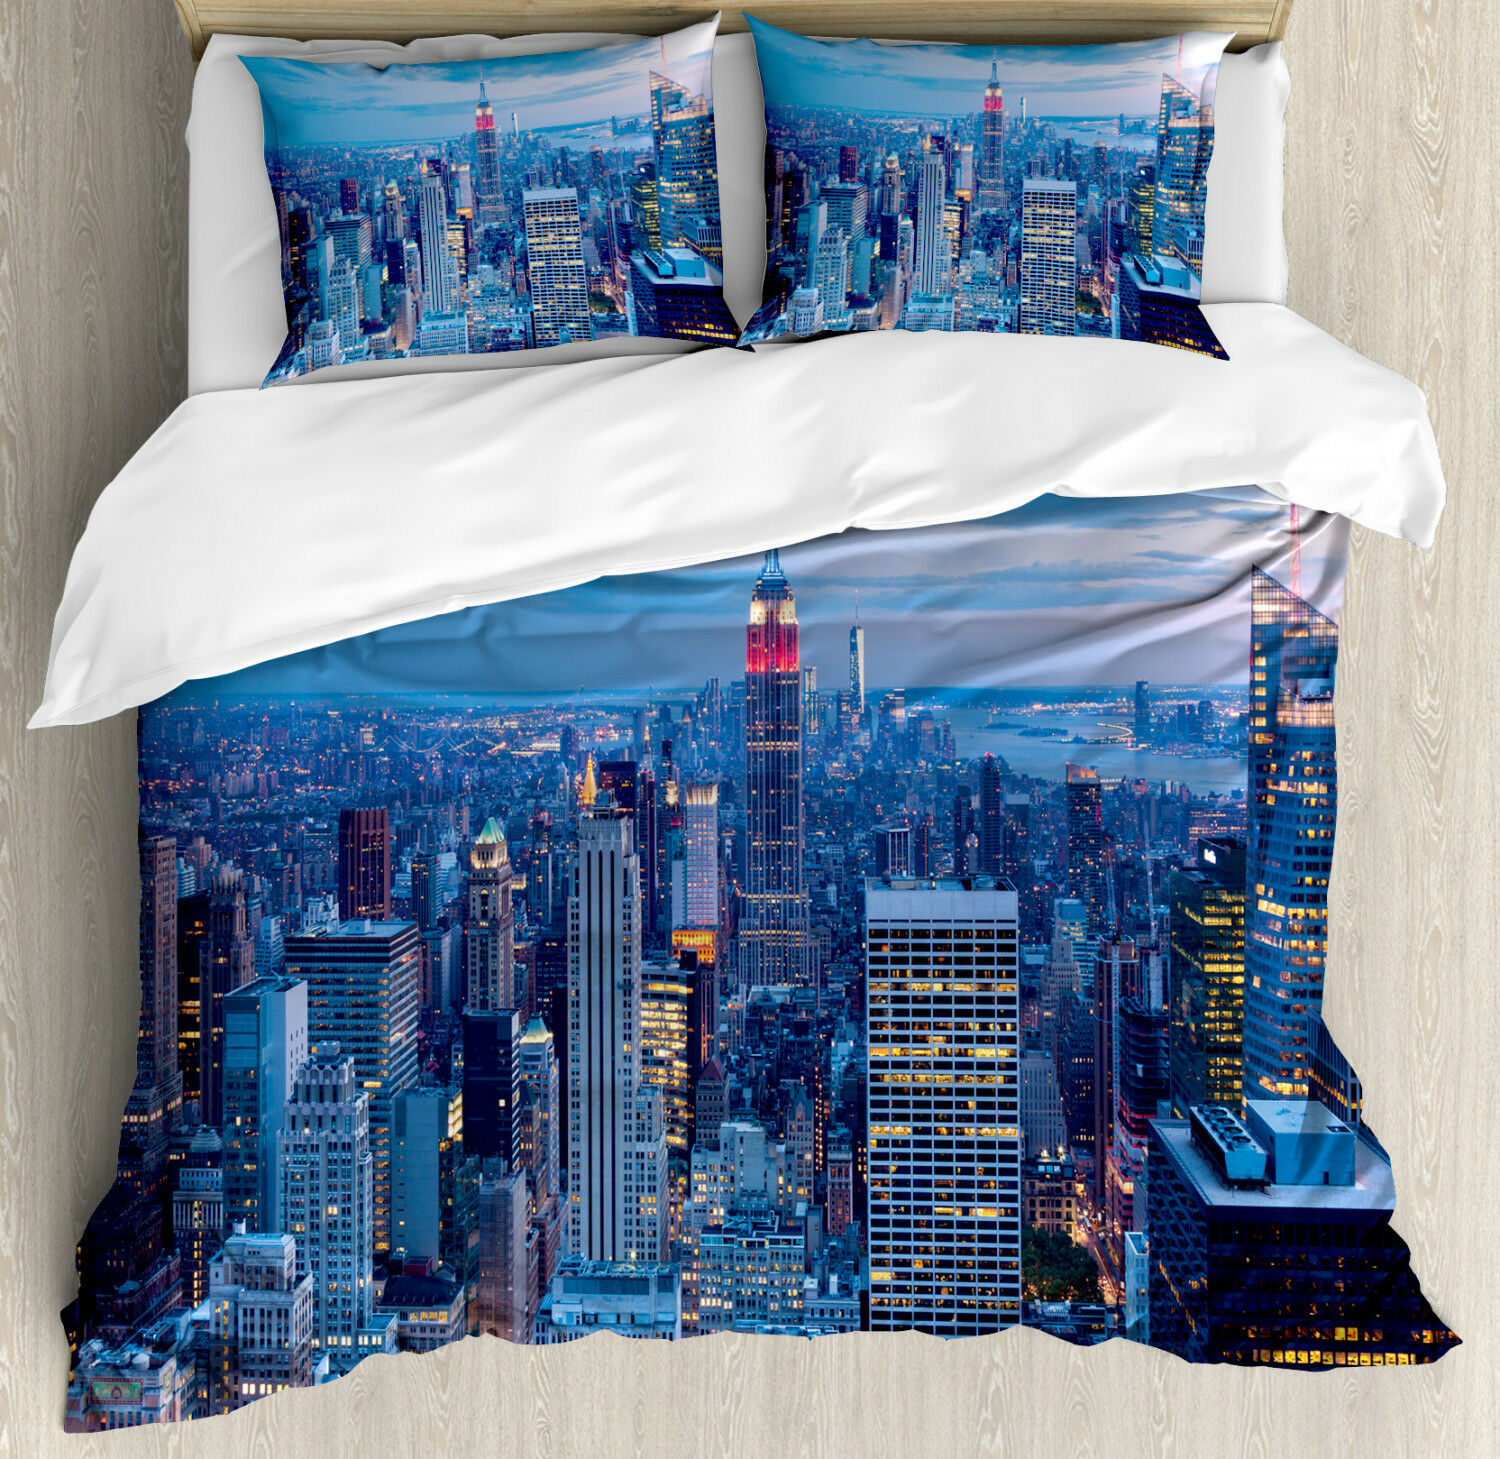 Landscape Duvet Cover Set with Pillow Shams Sunset in NYC Photo Print